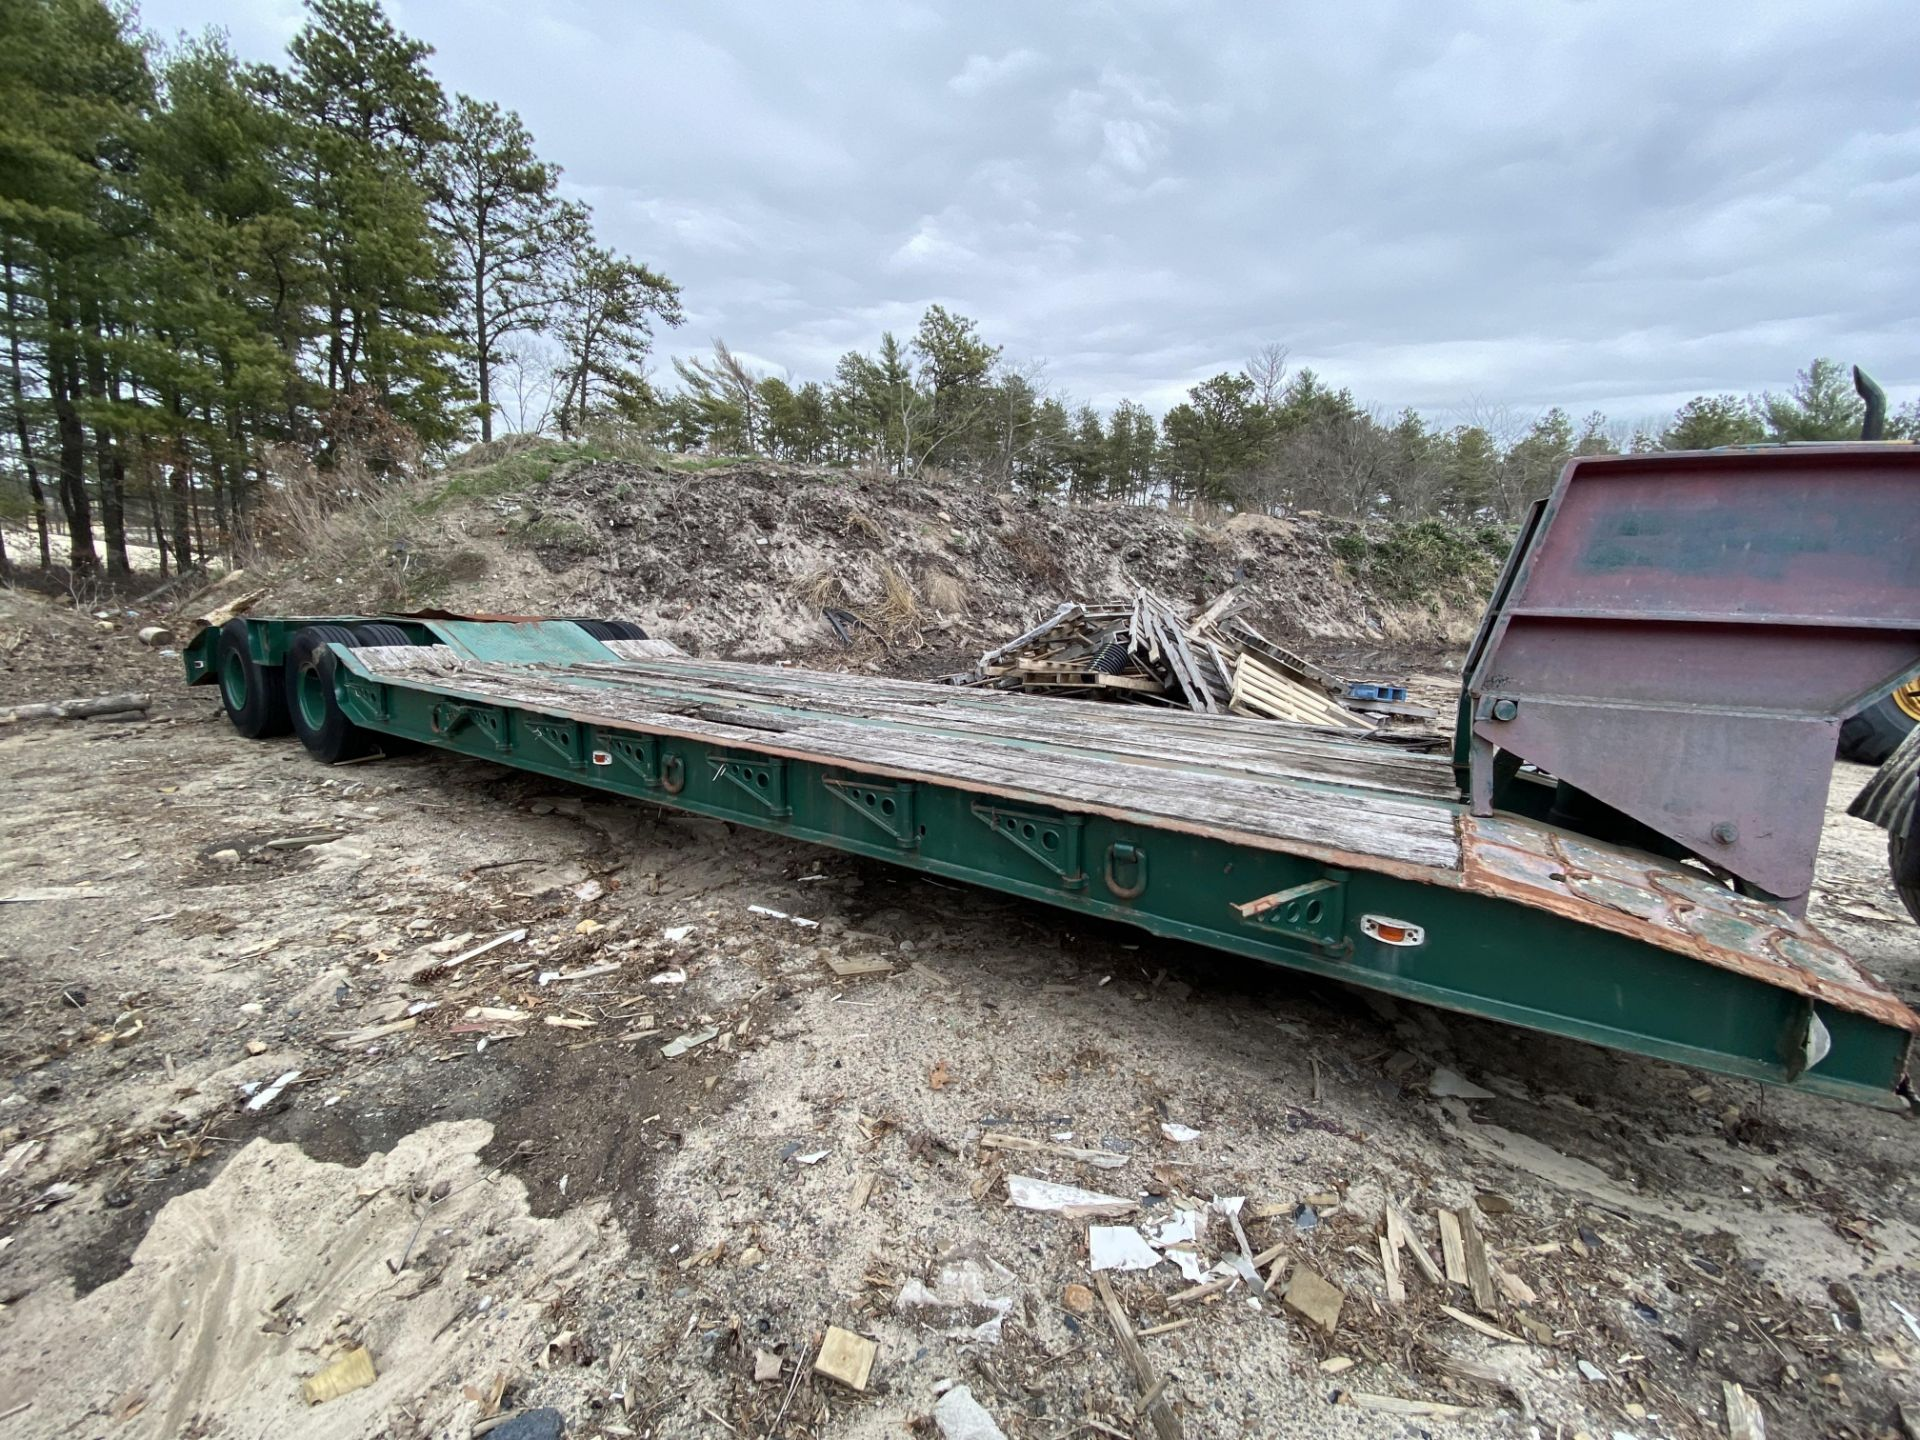 1973 General 35 Ton Low Bed Trailer VIN 35GHG73378R, Have Title - Image 8 of 11